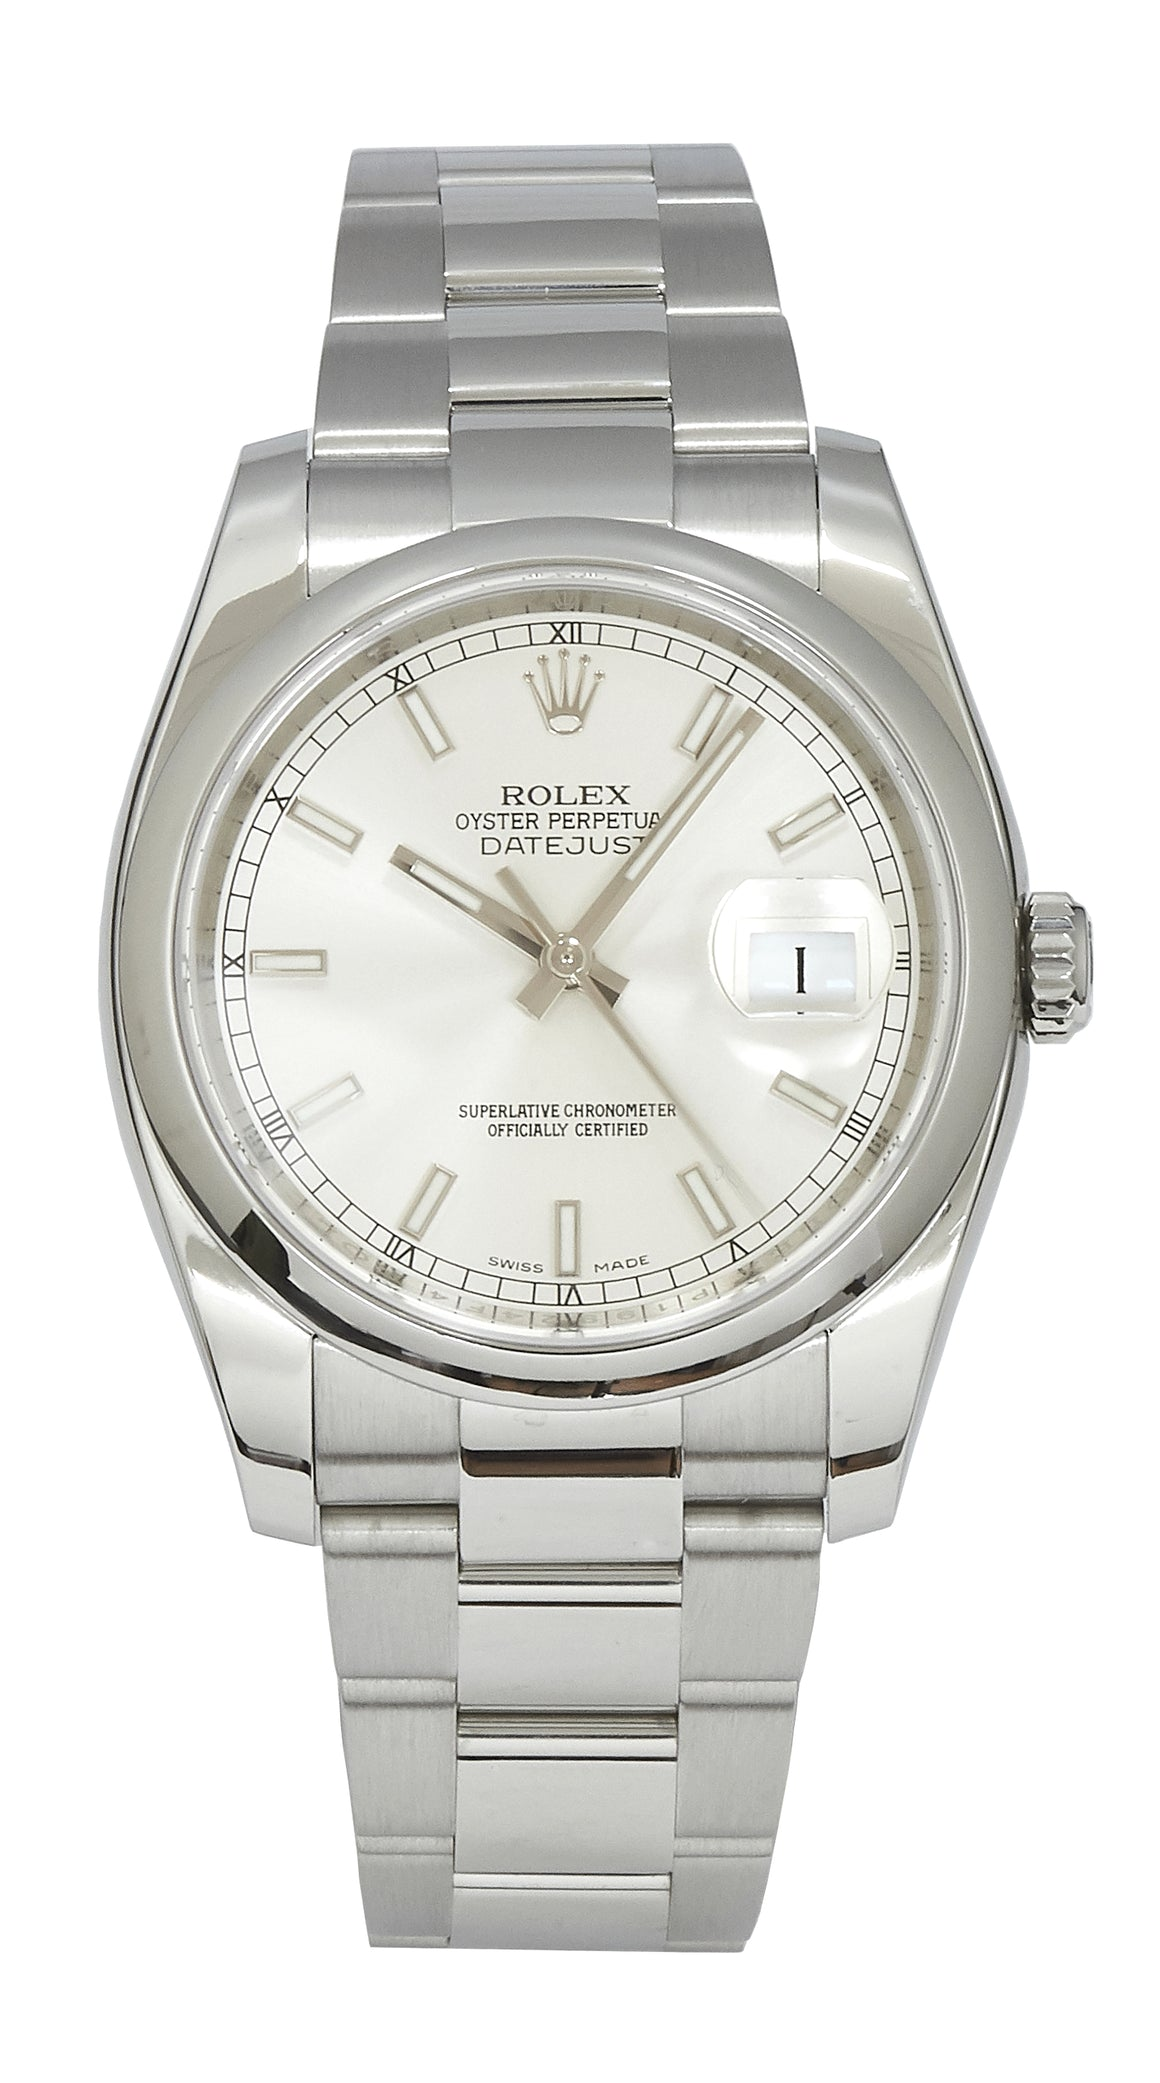 Rolex Datejust Silver Dial, B&P (2015)